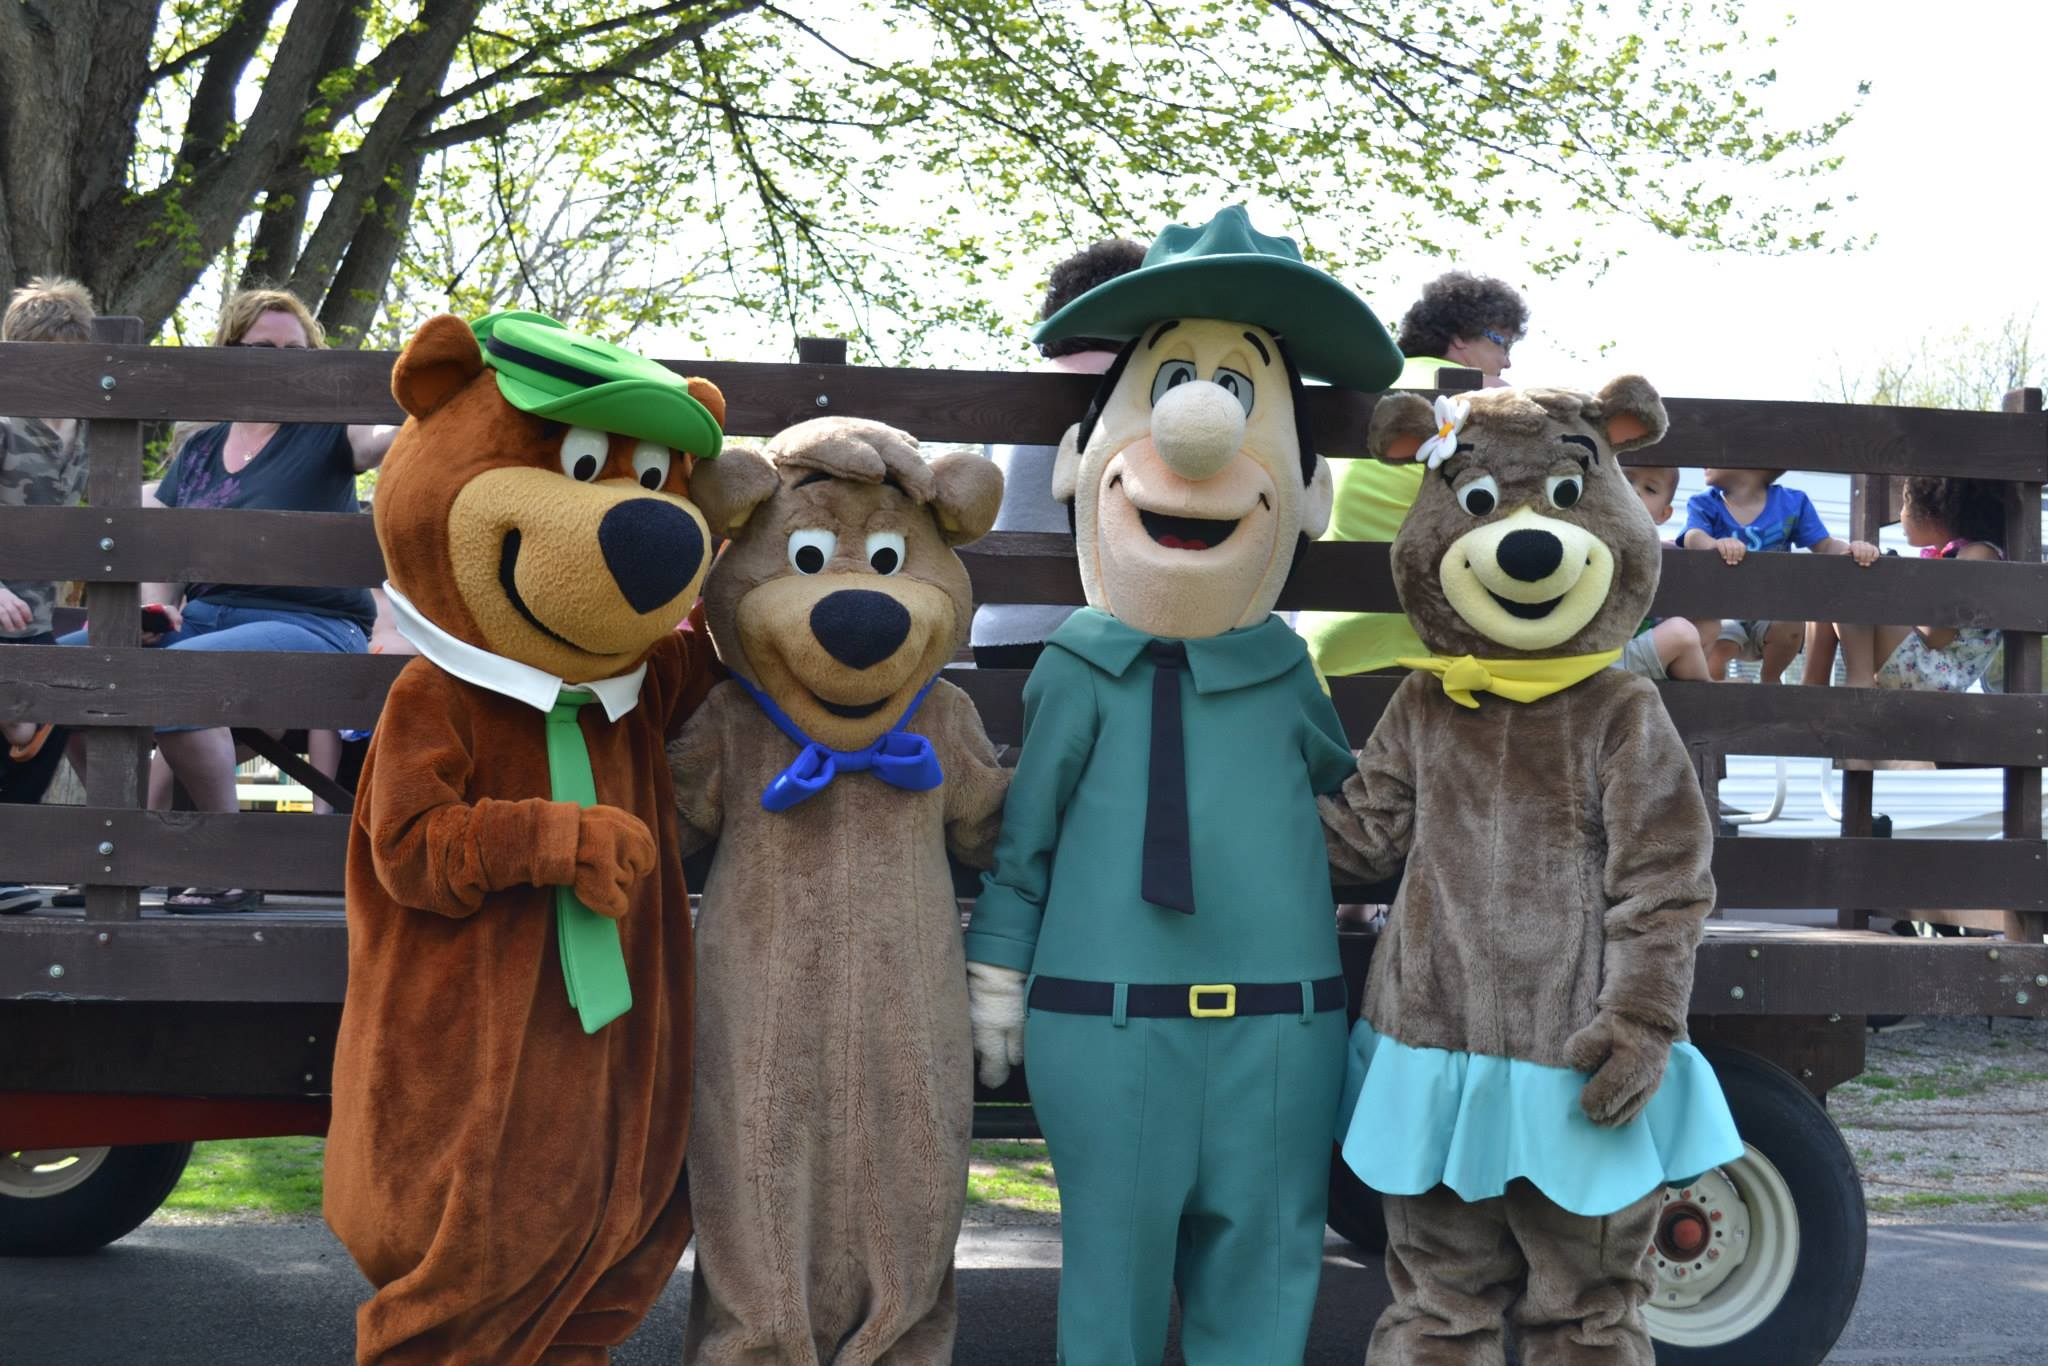 Yogi Bear characters in front of wagon ride.